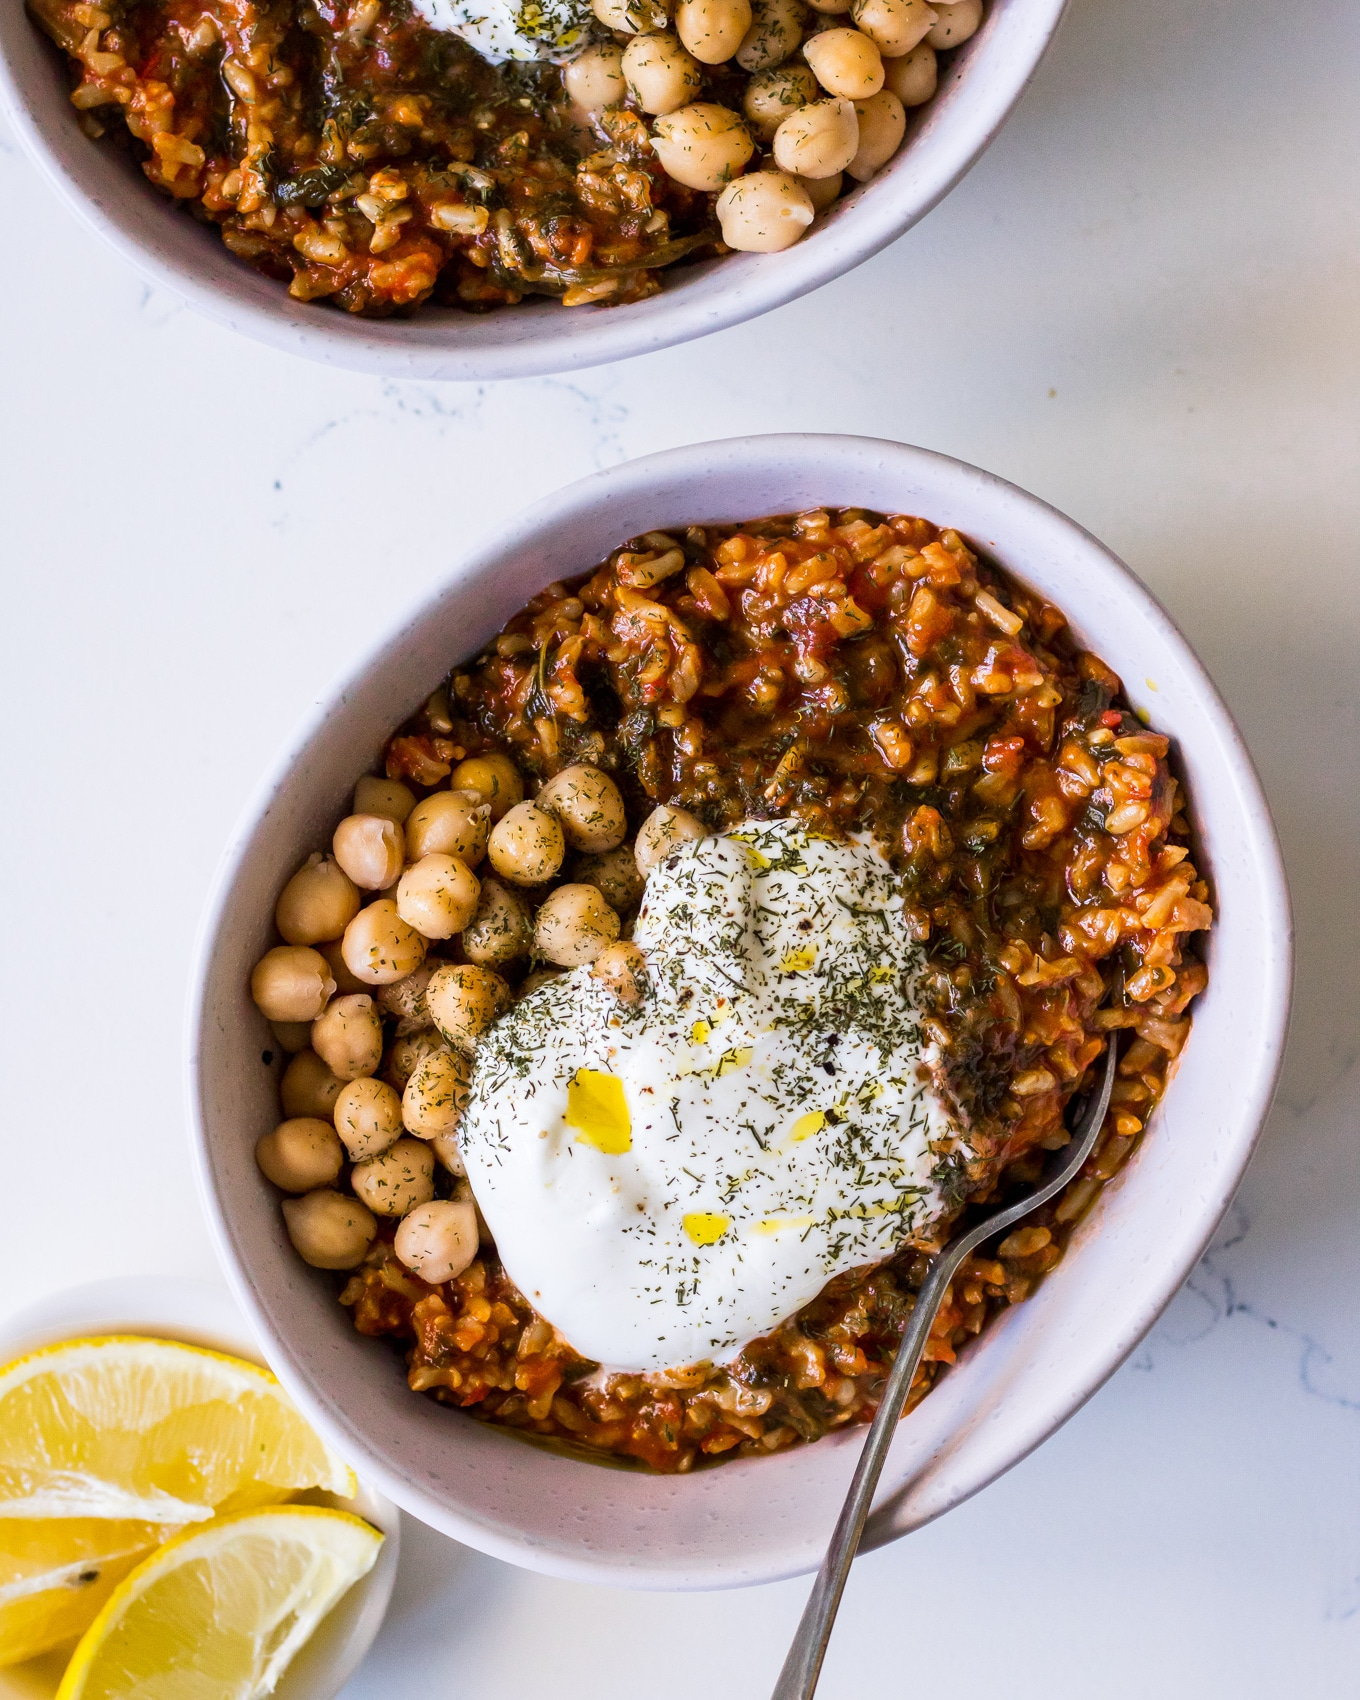 White bowl filled with spanakorizo (Greek spinach and rice), chickpeas and yoghurt with lemon and herbs